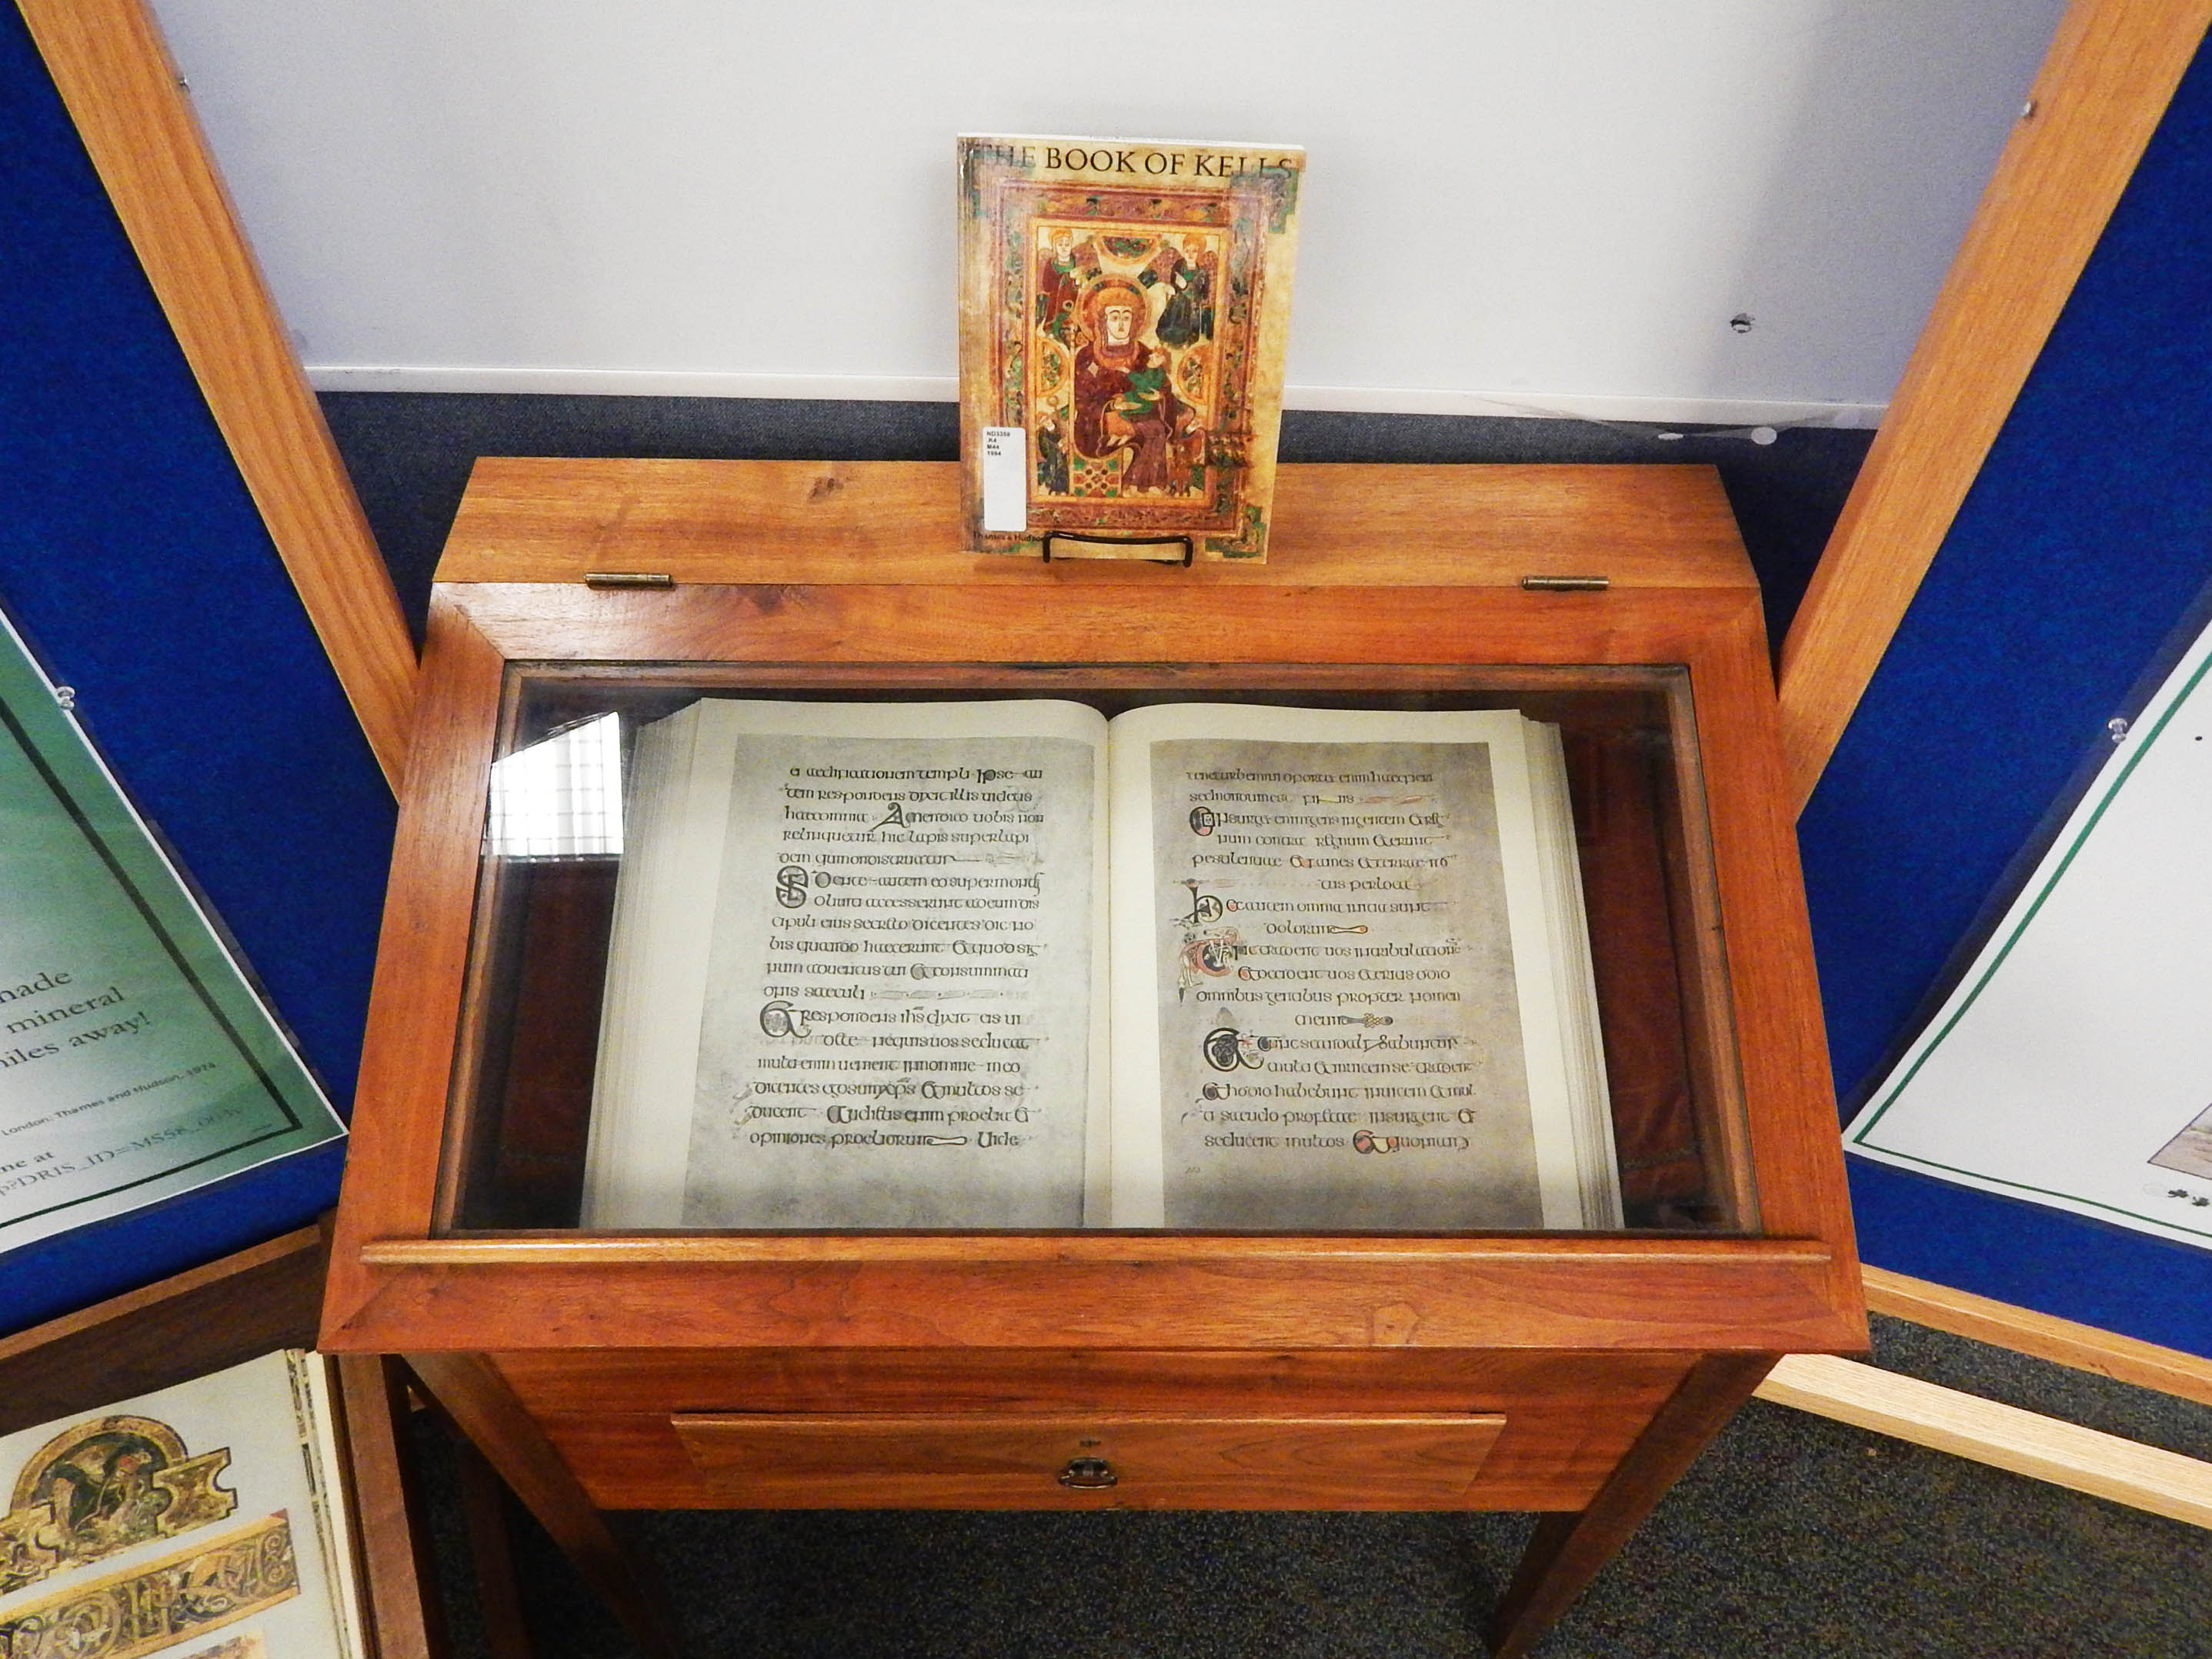 gumberg library displays the land of saints and book of kells